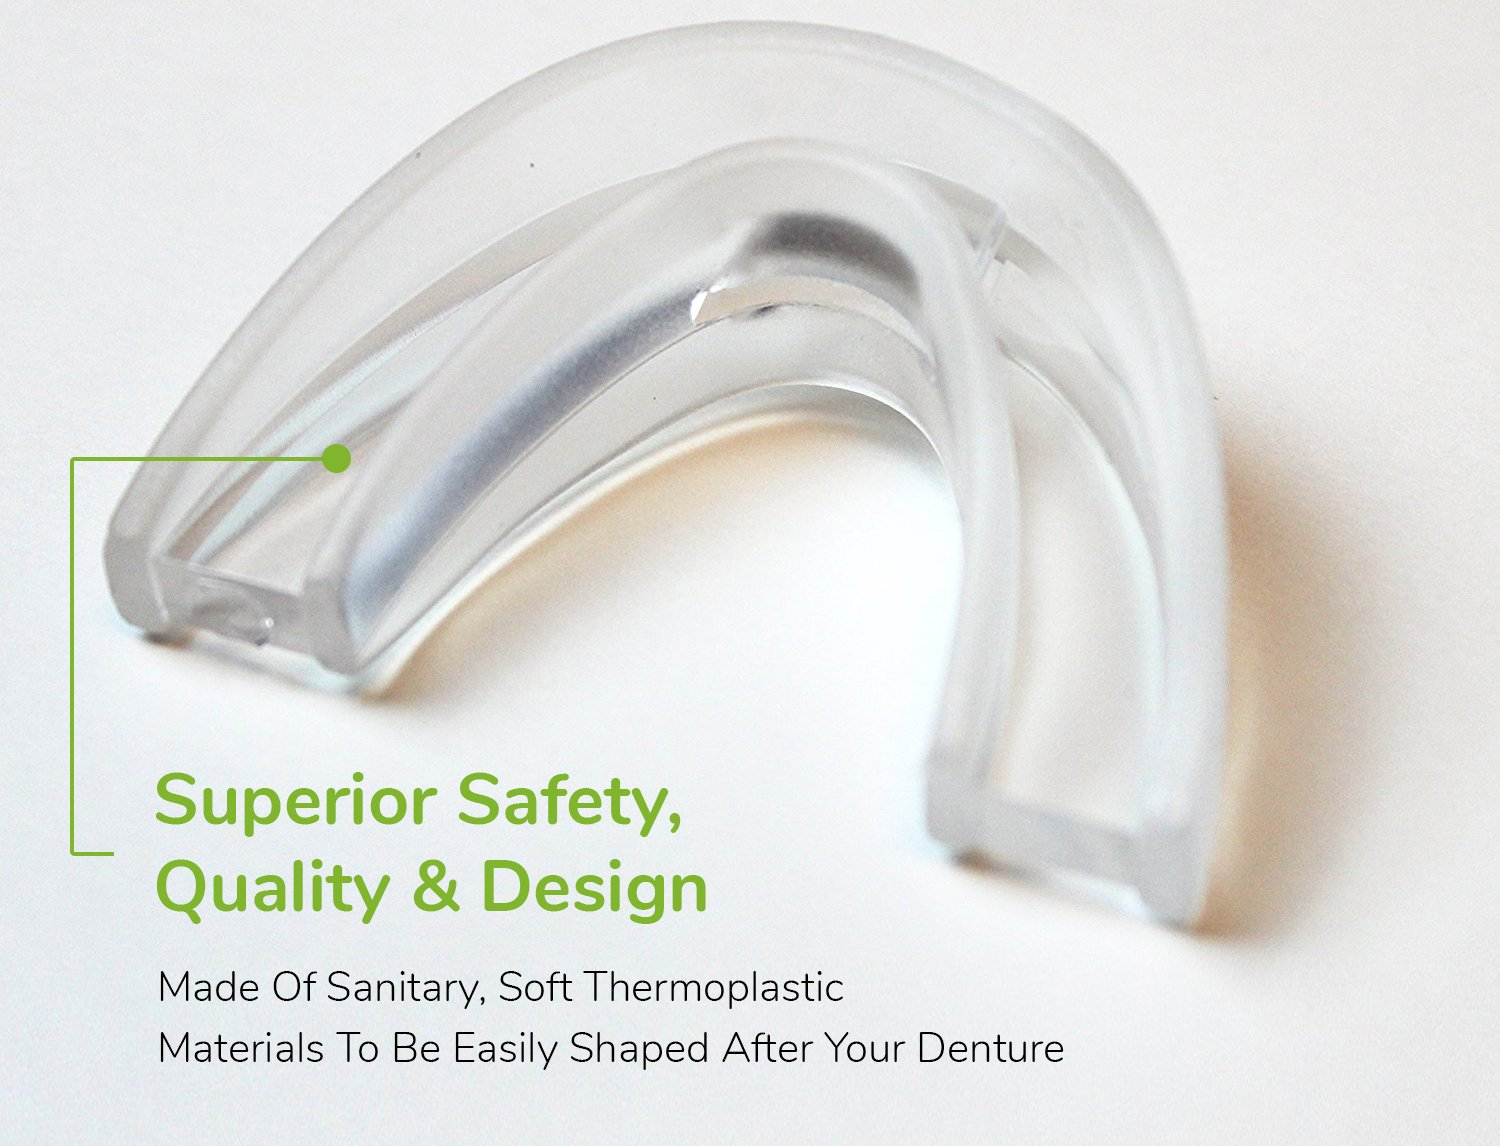 Bangbreak Snore Stopper Mouthpiece - Snoring Solution, Sleep Aid Night Mouth Guard Bruxism Mouthpiece, Best anti snoring device, sleep well and quiet sleeping night by Bangbreak (Image #3)